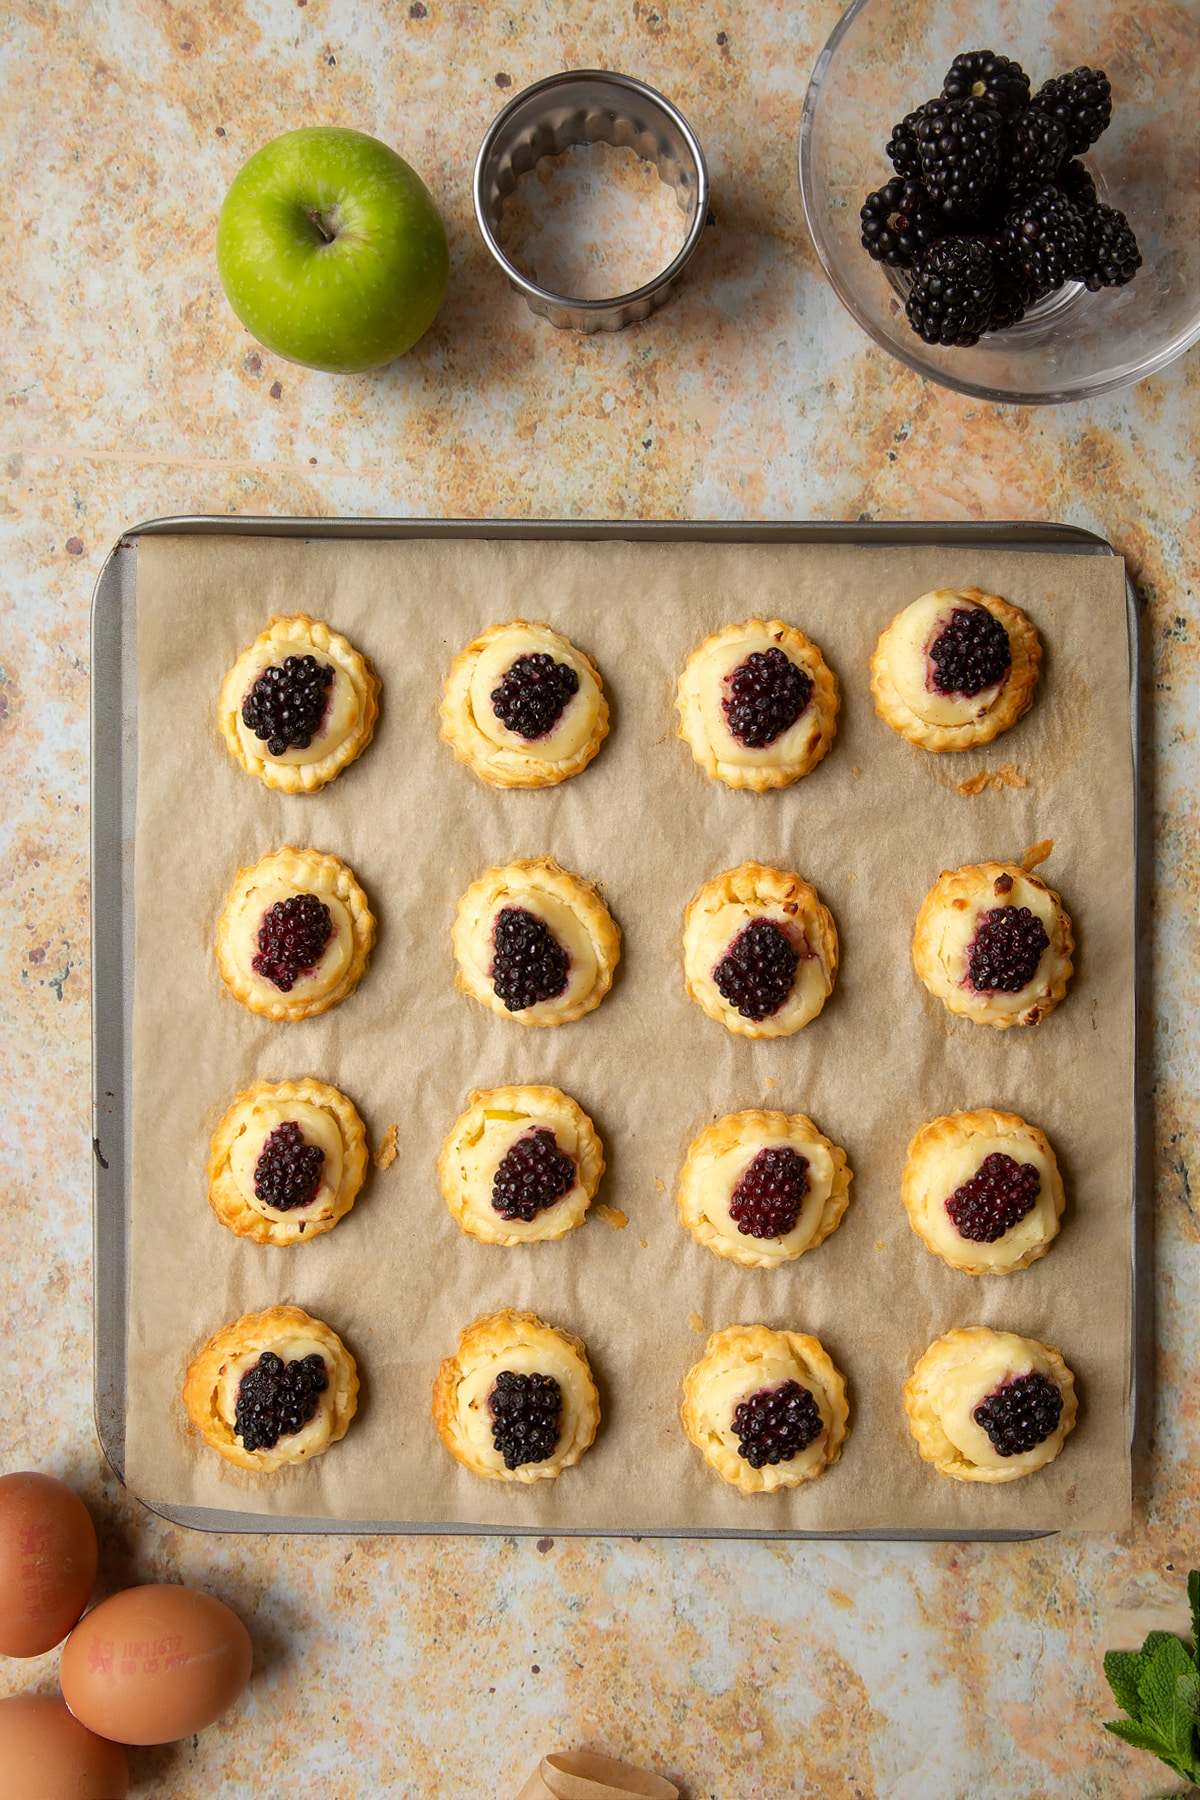 16 freshly baked blackberry tartlets comprised of a small puff pastry disc topped with sliced apple, pastry cream and a blackberry sit on a lined baking sheet.